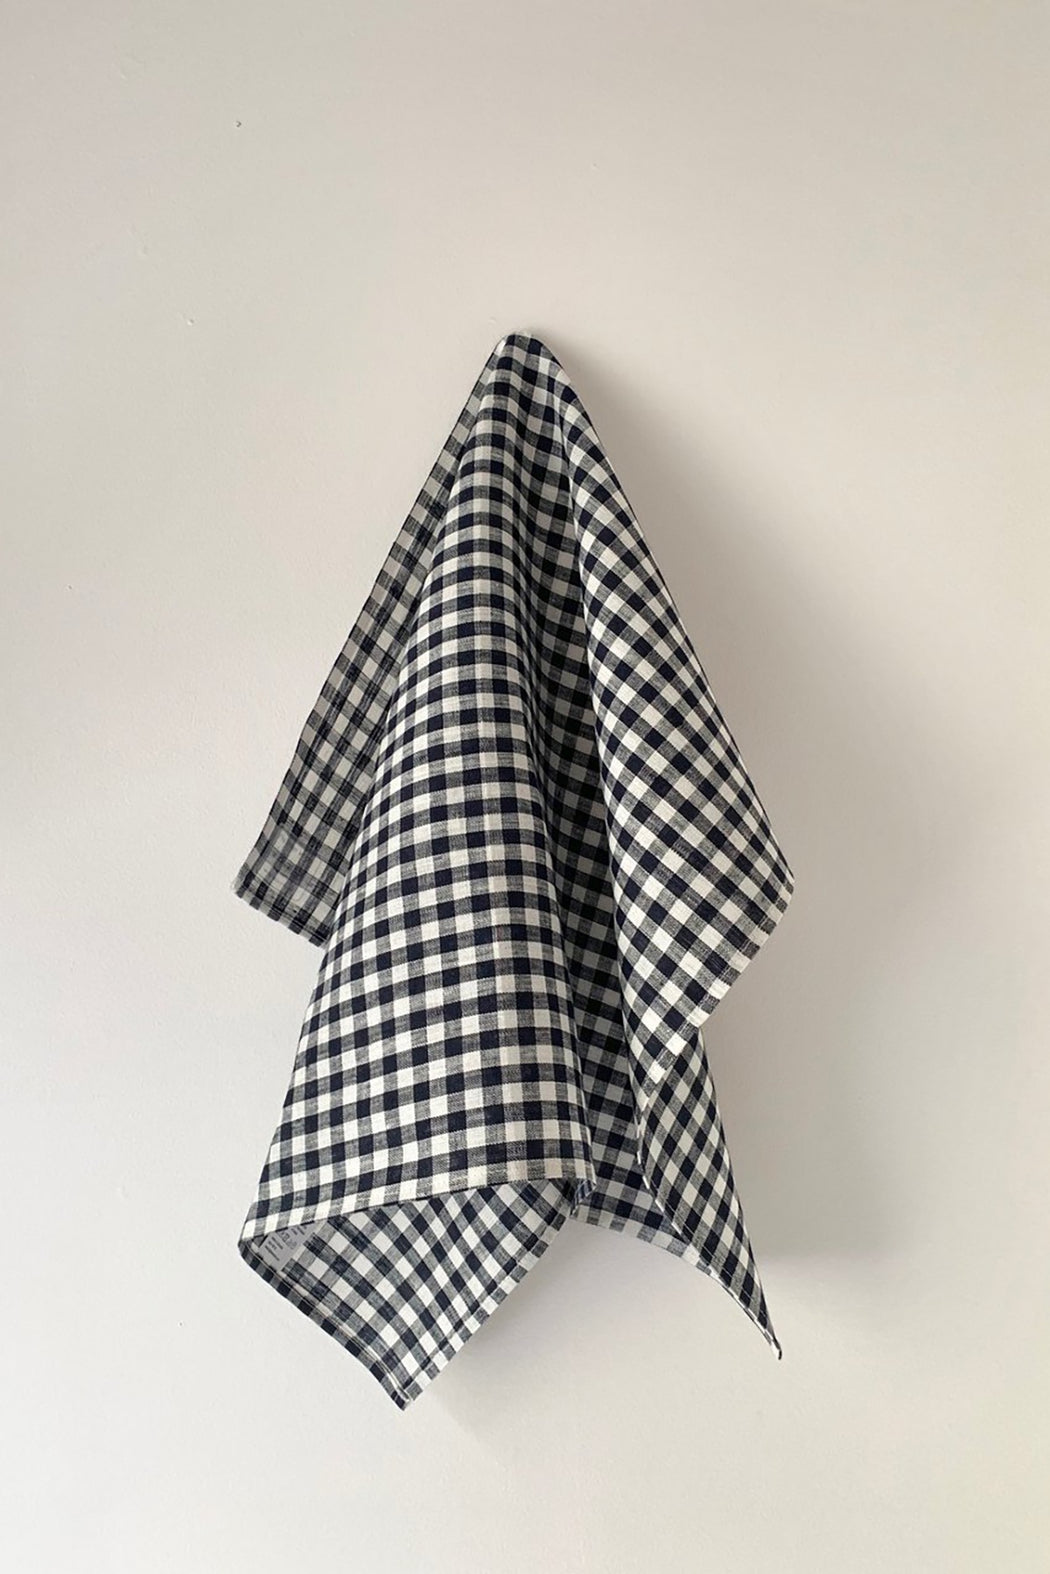 Kitchen Cloth - Checks